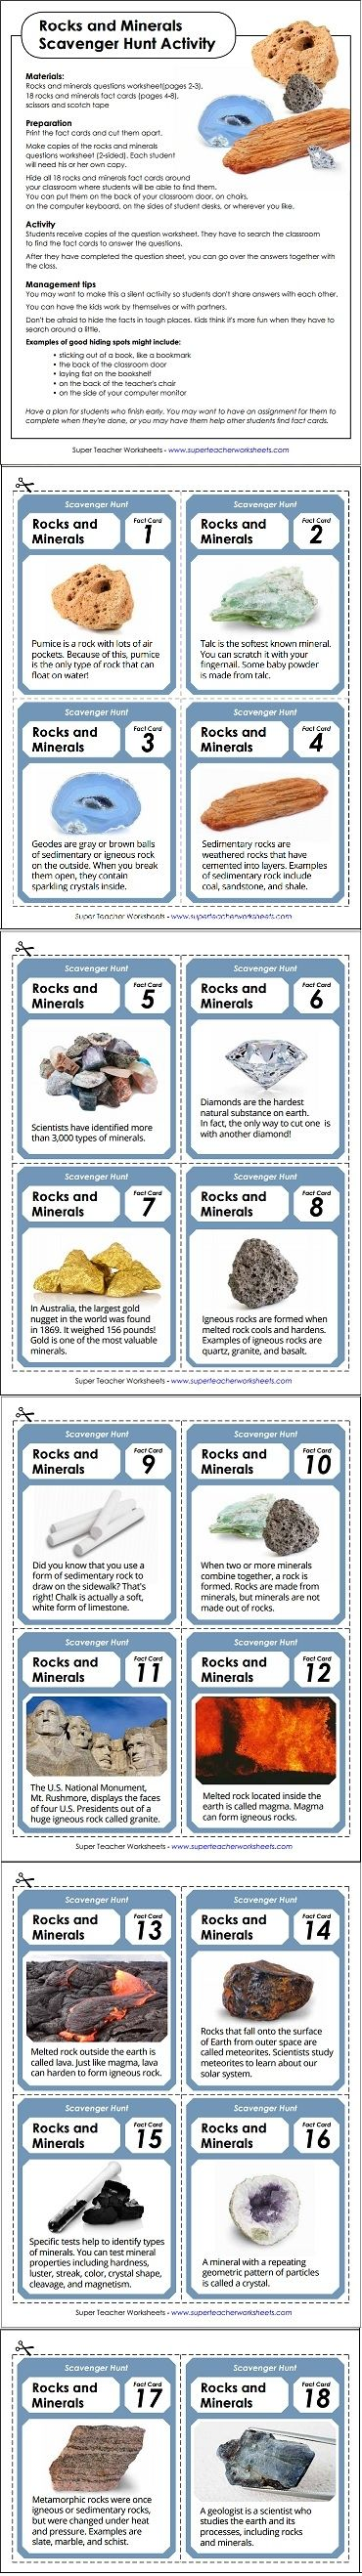 17 Best images about Science geek - earth science on Pinterest | Rocks,  Earth science and Student